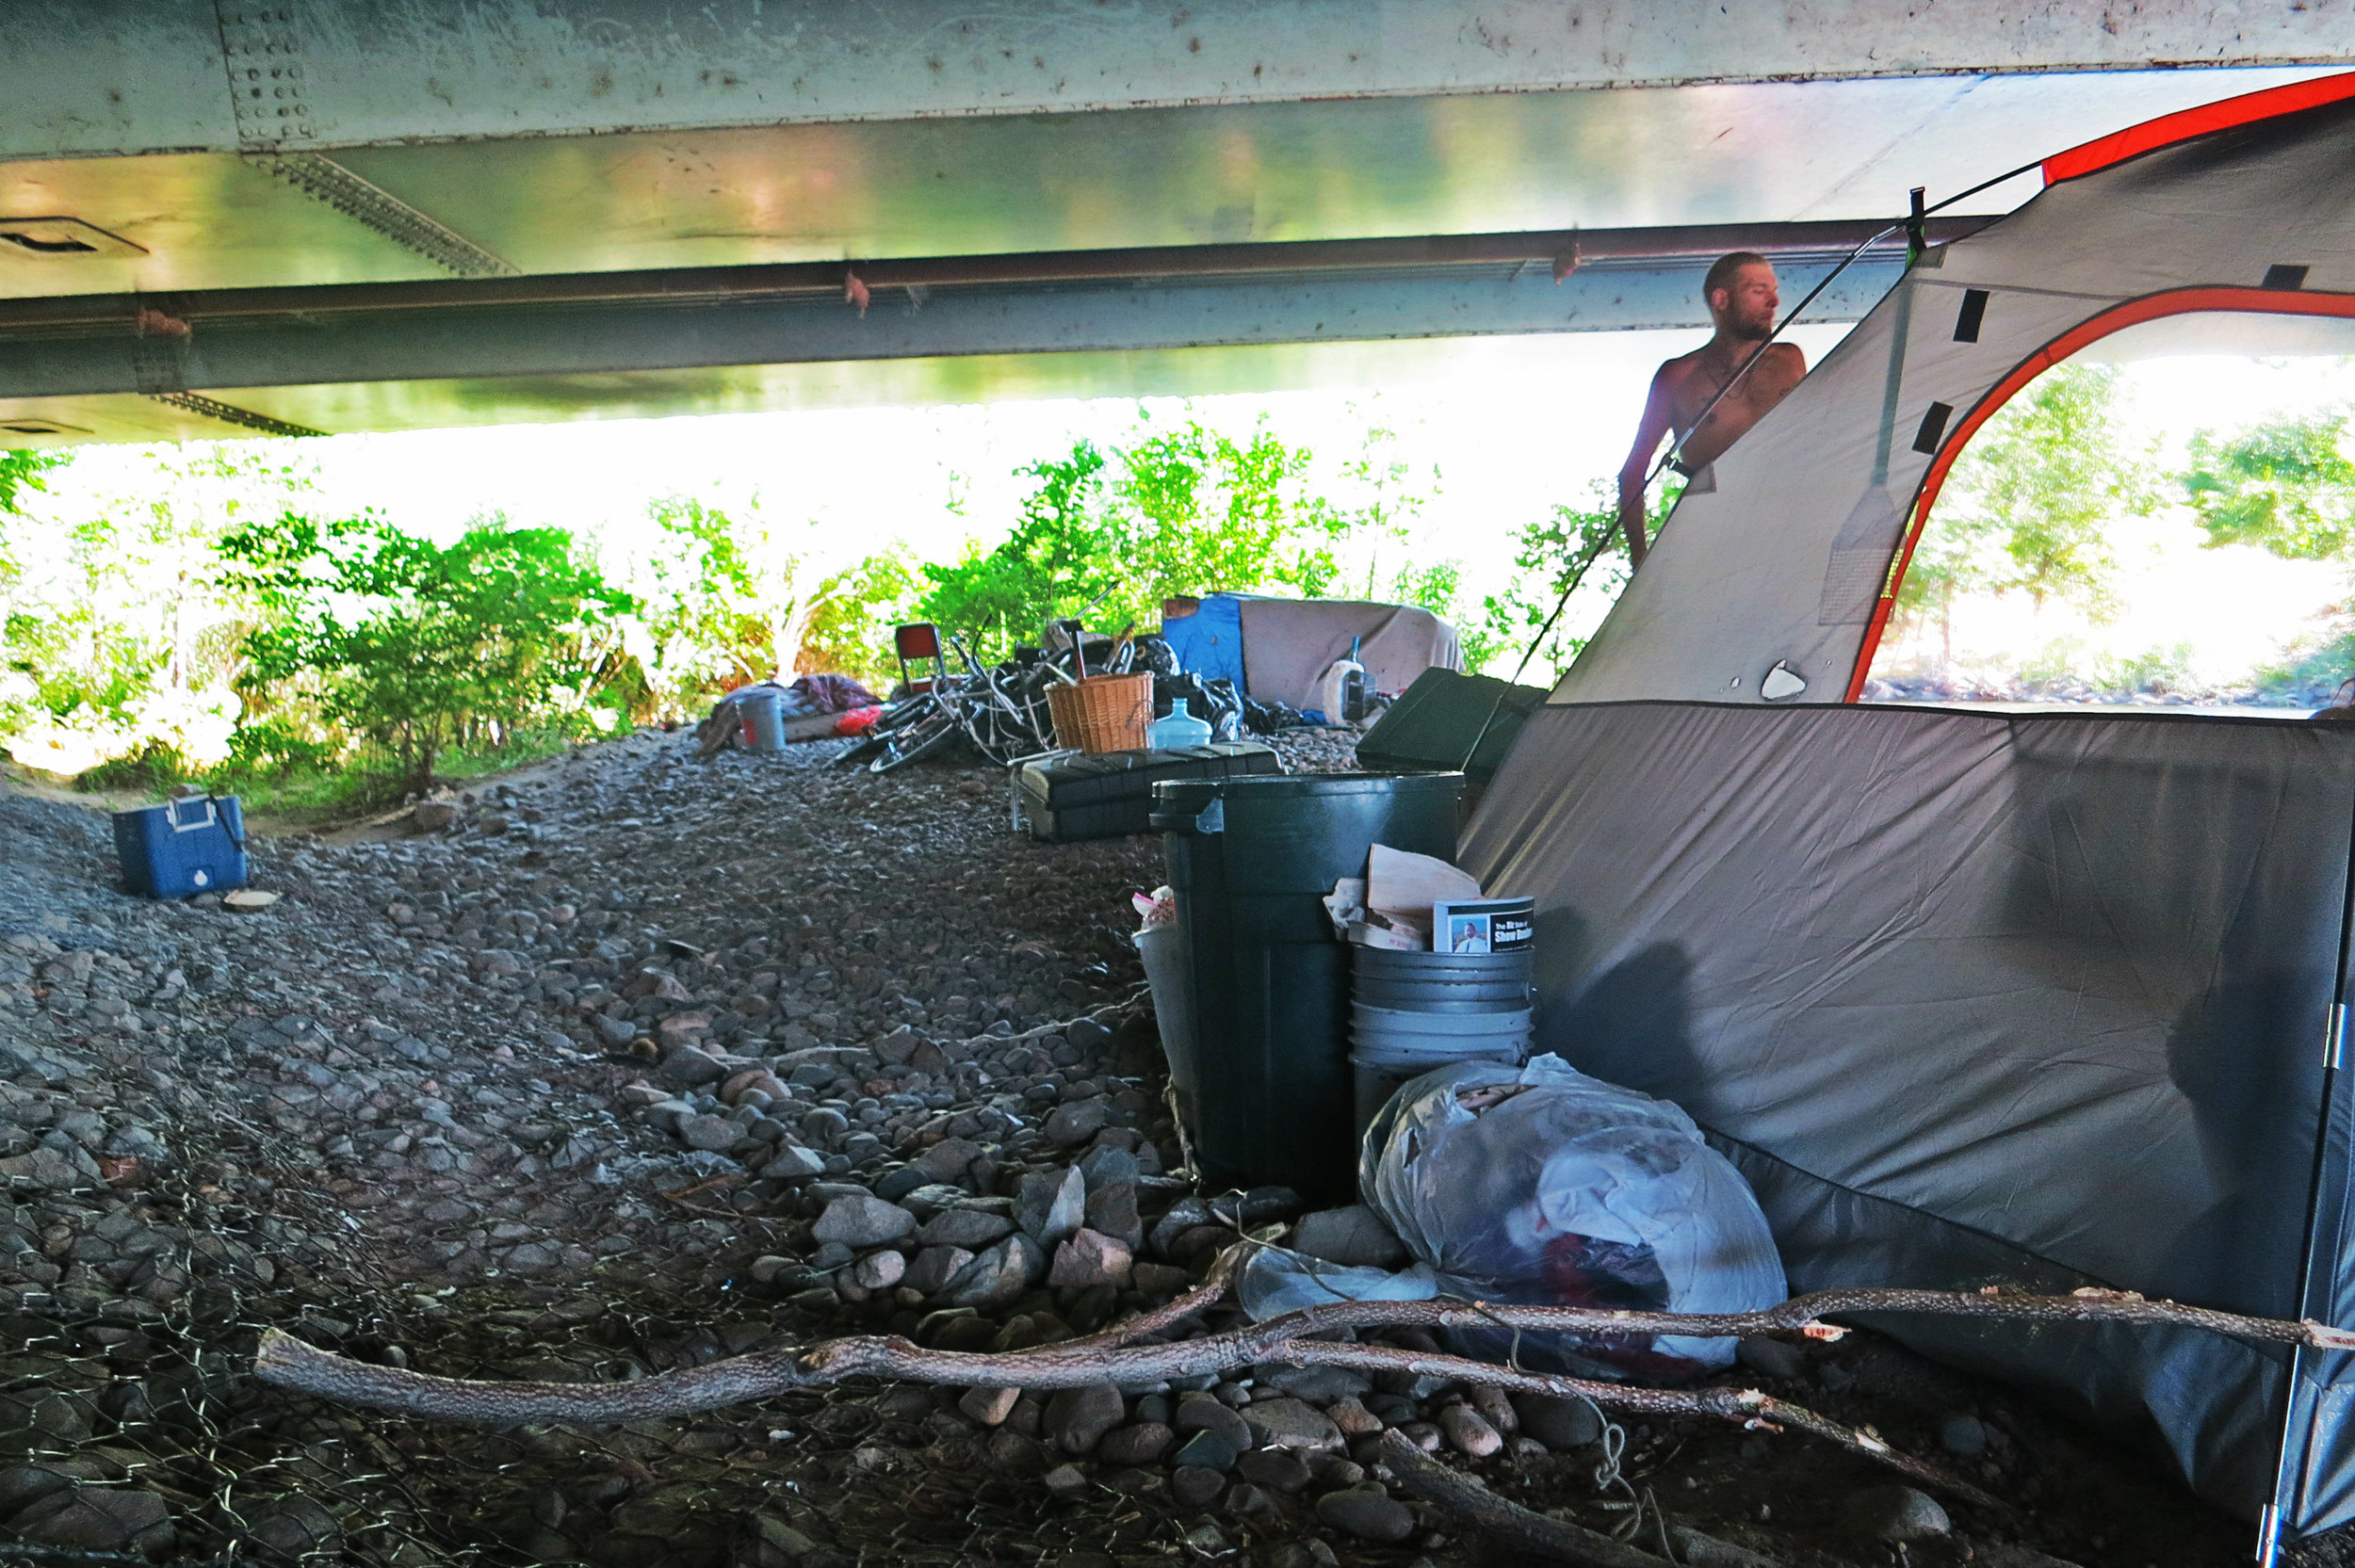 Many homeless here say they rip up the citations they receive. They say they keep the area clean, and want to be left alone. July 4, 2016